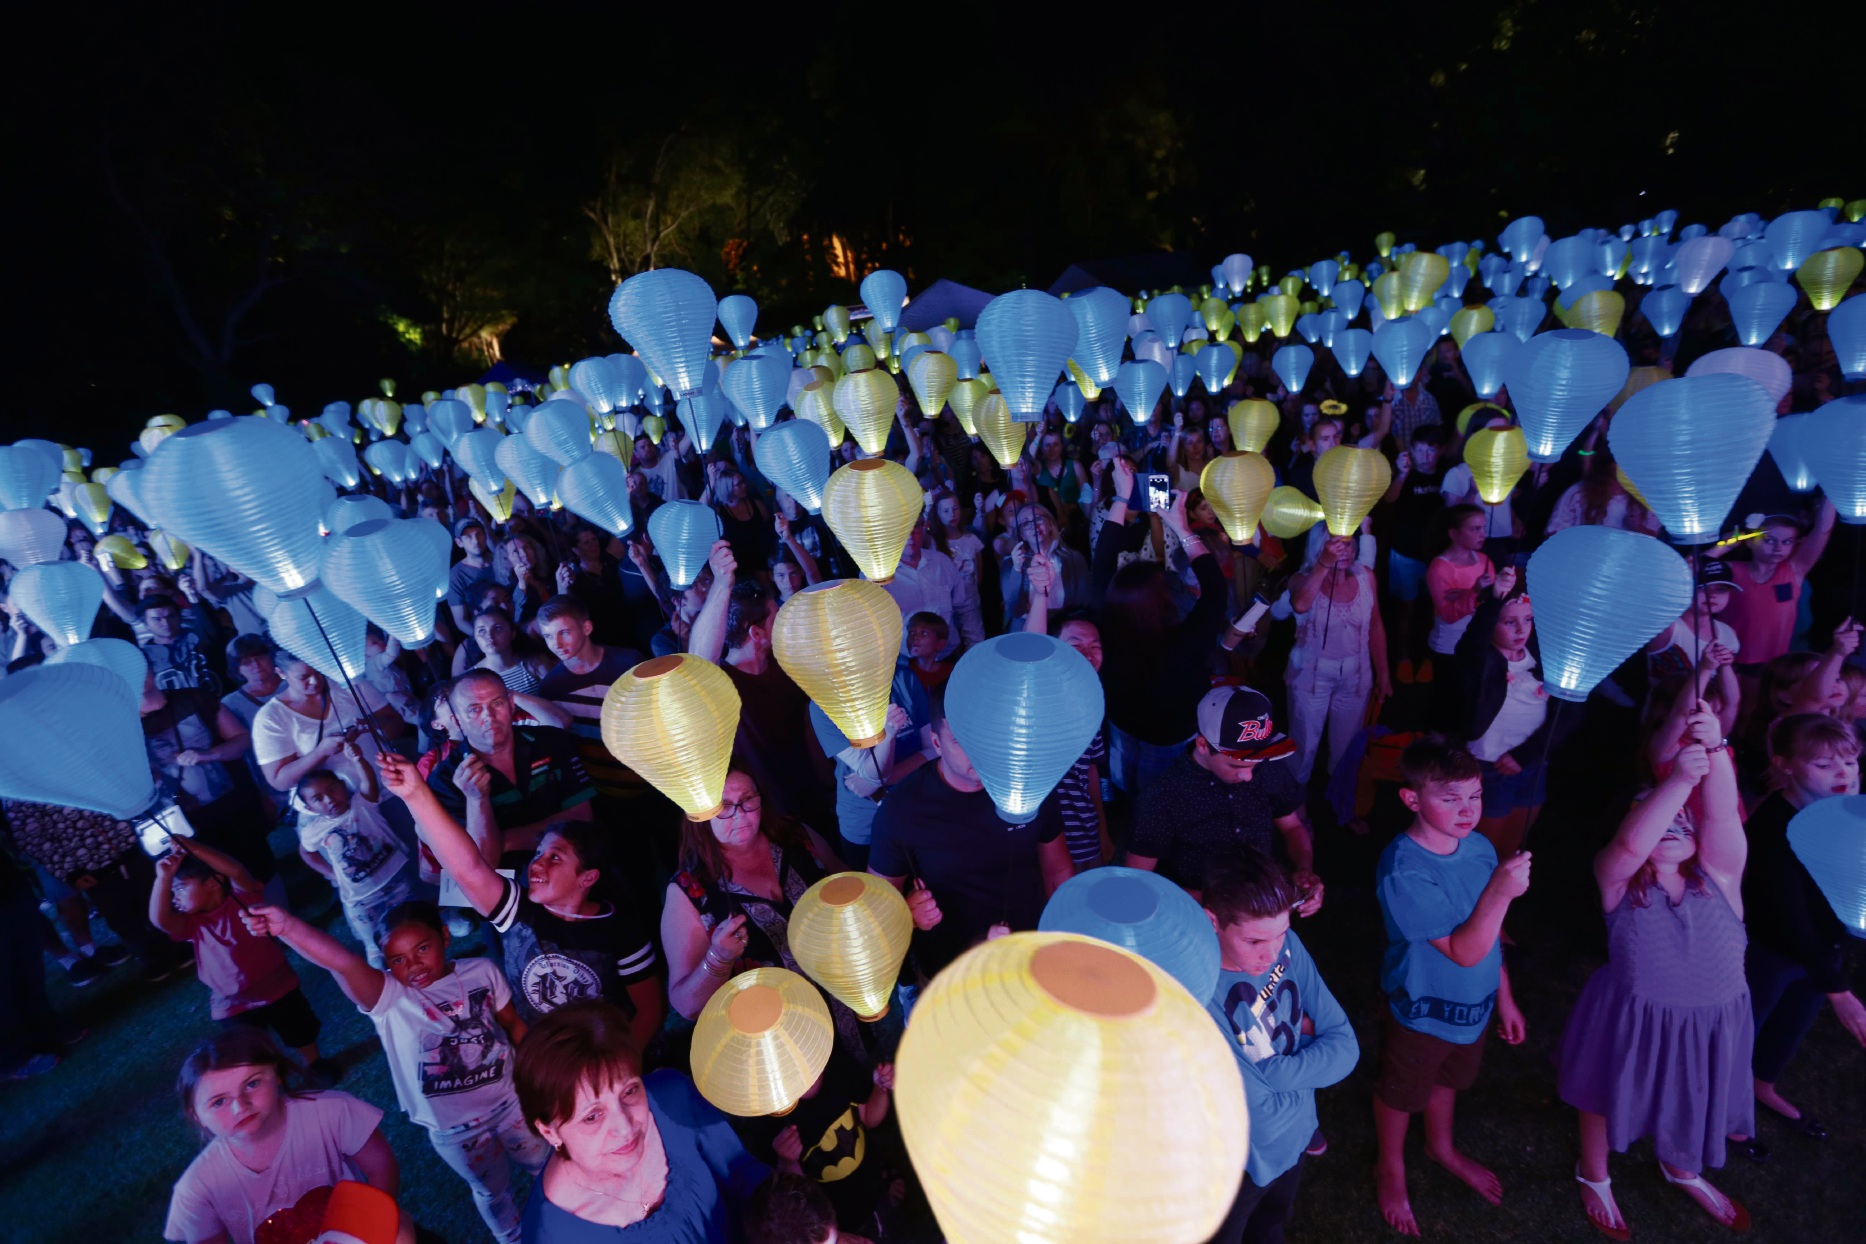 Lanterns show support at last year's Light the Night event in Perth.